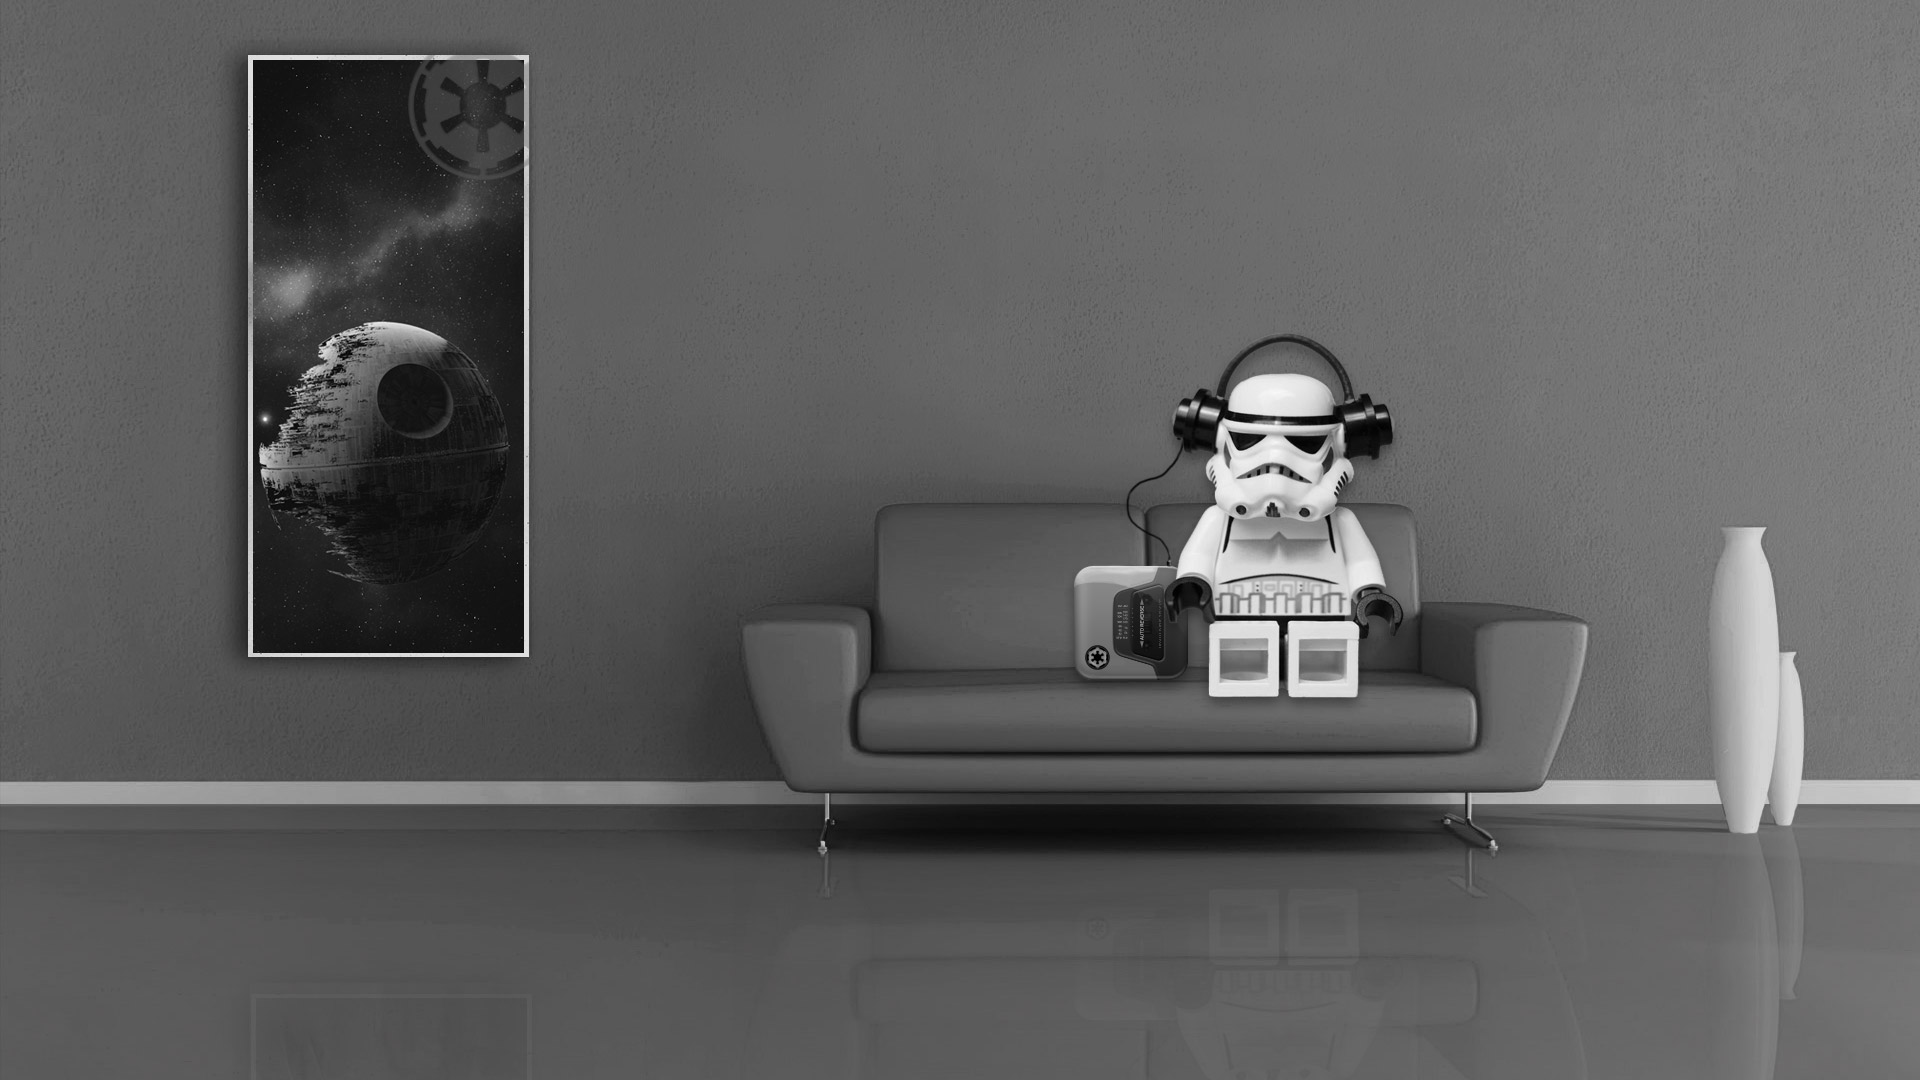 stormtrooper lego star wars ad